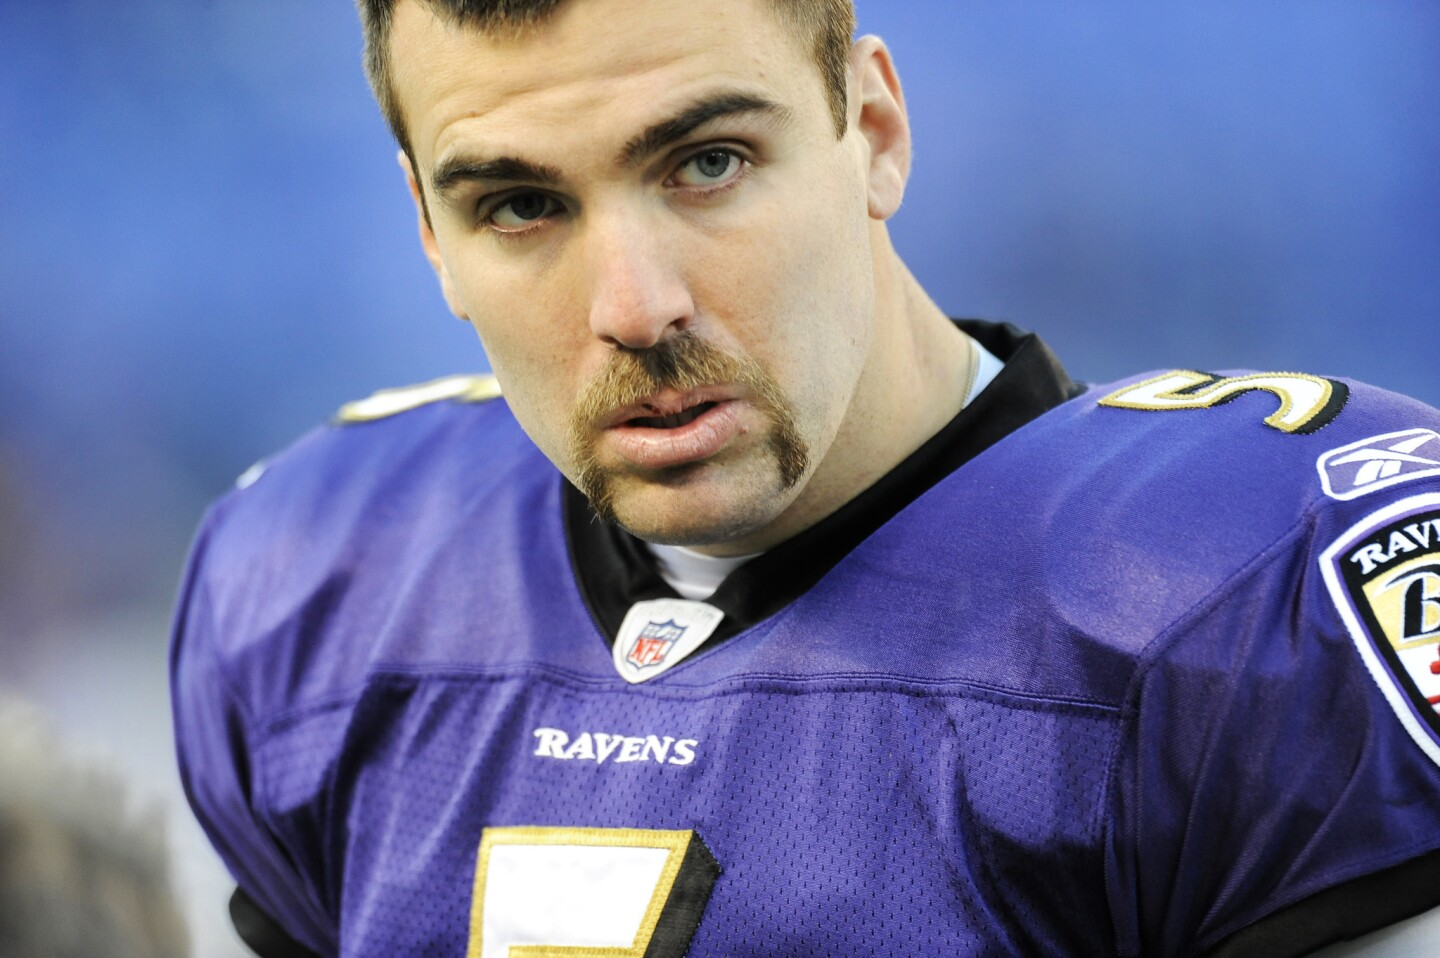 Will Ravens quarterback Joe Flacco start a trend with his new look?